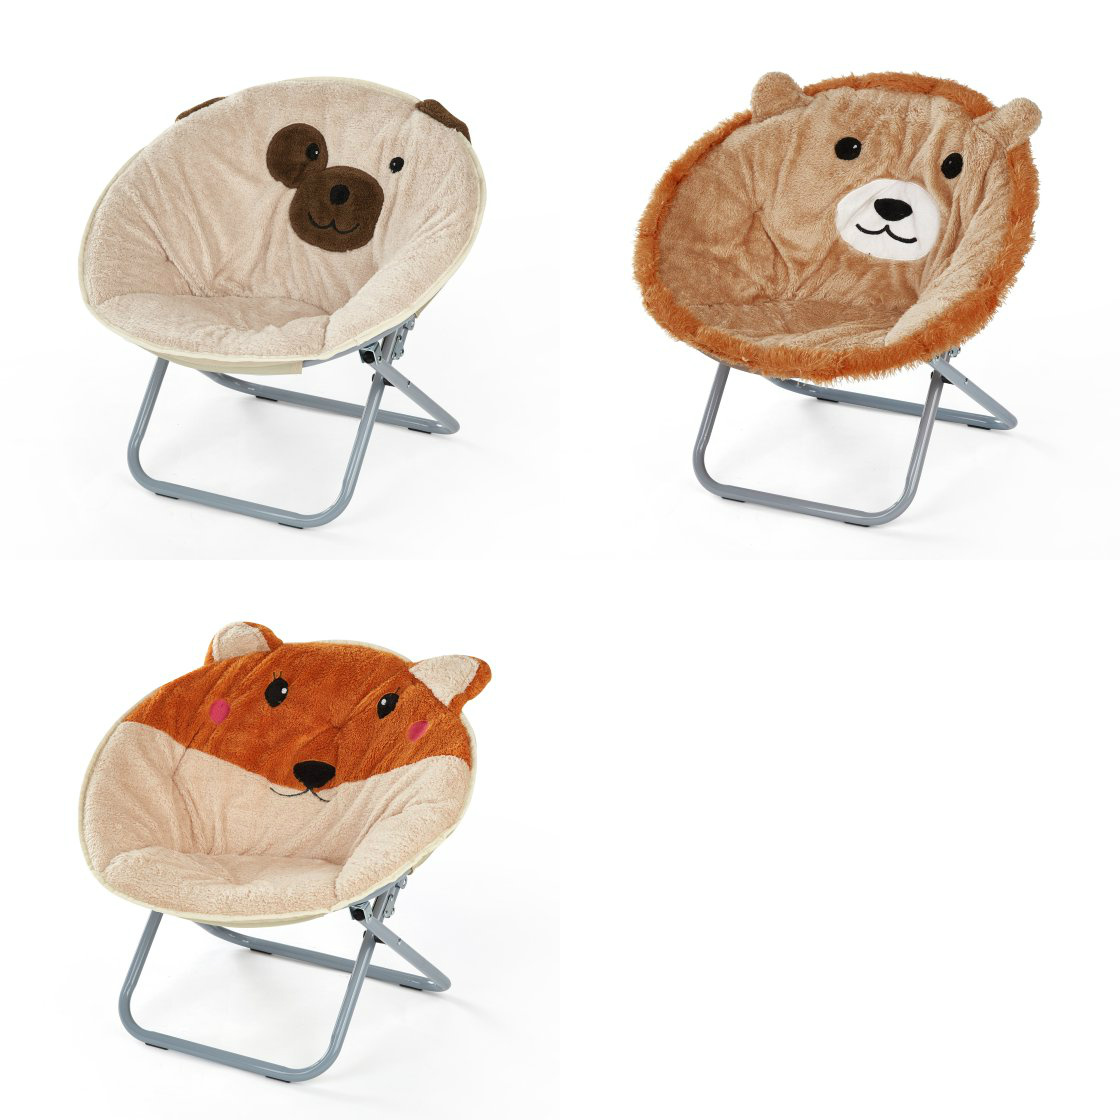 Whether You Are Studying Hanging Out With Friends Or Just Lounging Around This Animal Saucer Chair Makes A Fun Comfy Addition To Any Room